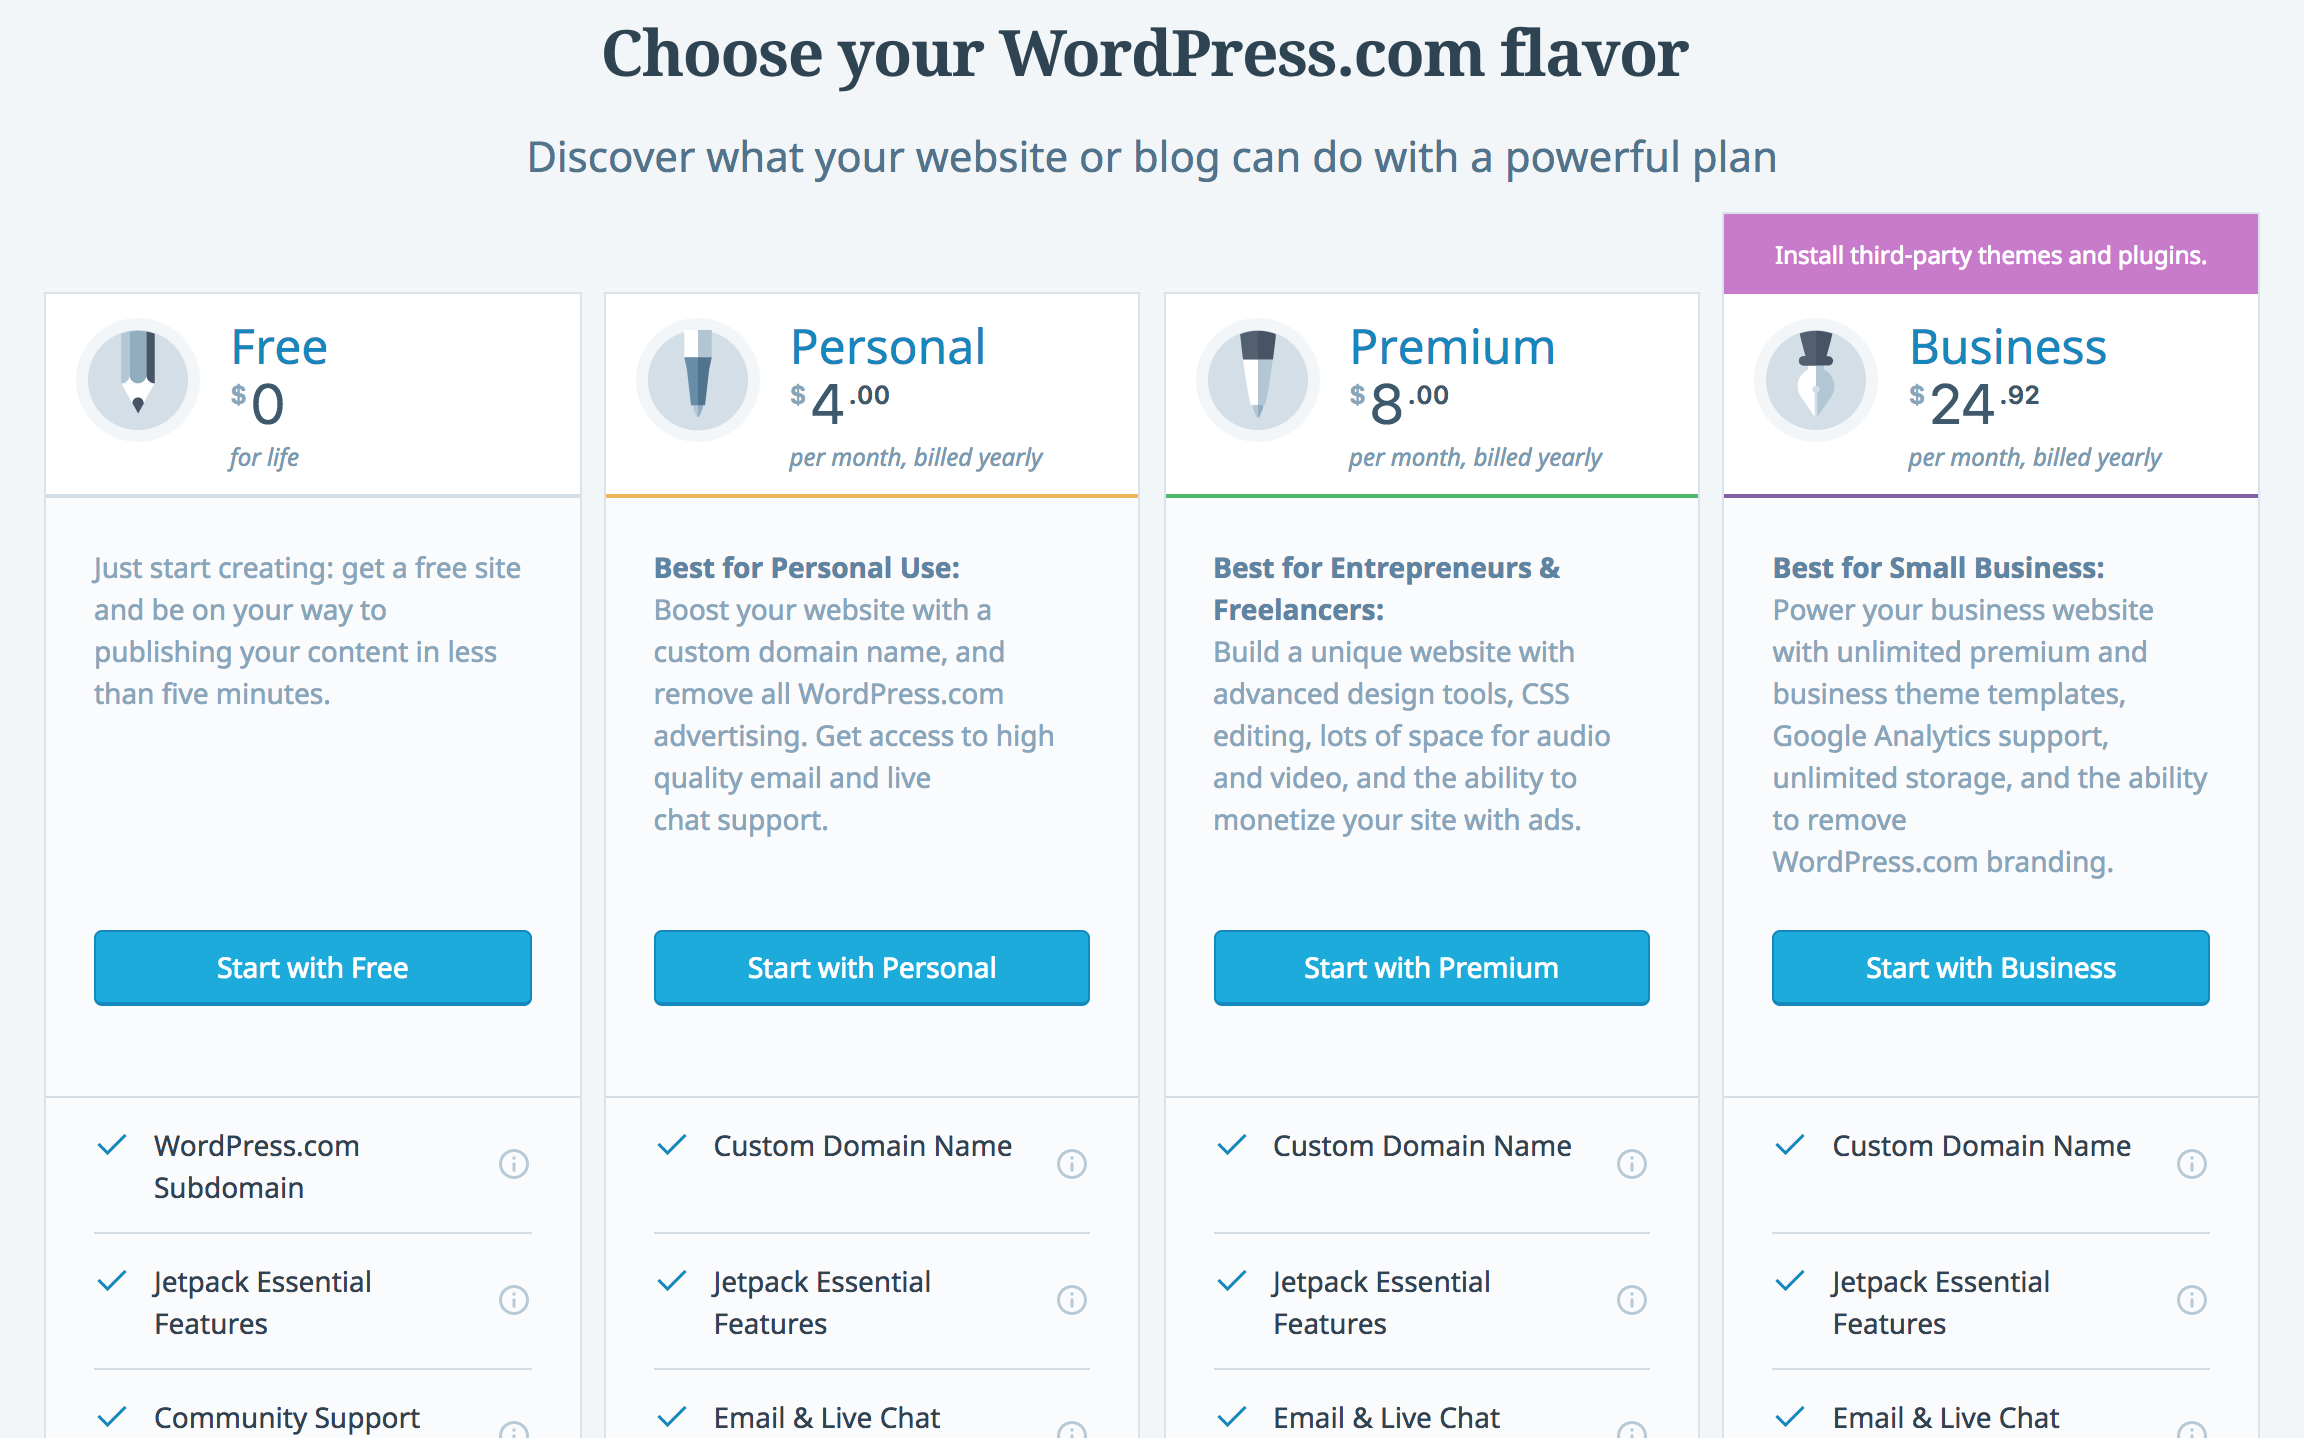 WordPress.com hosting